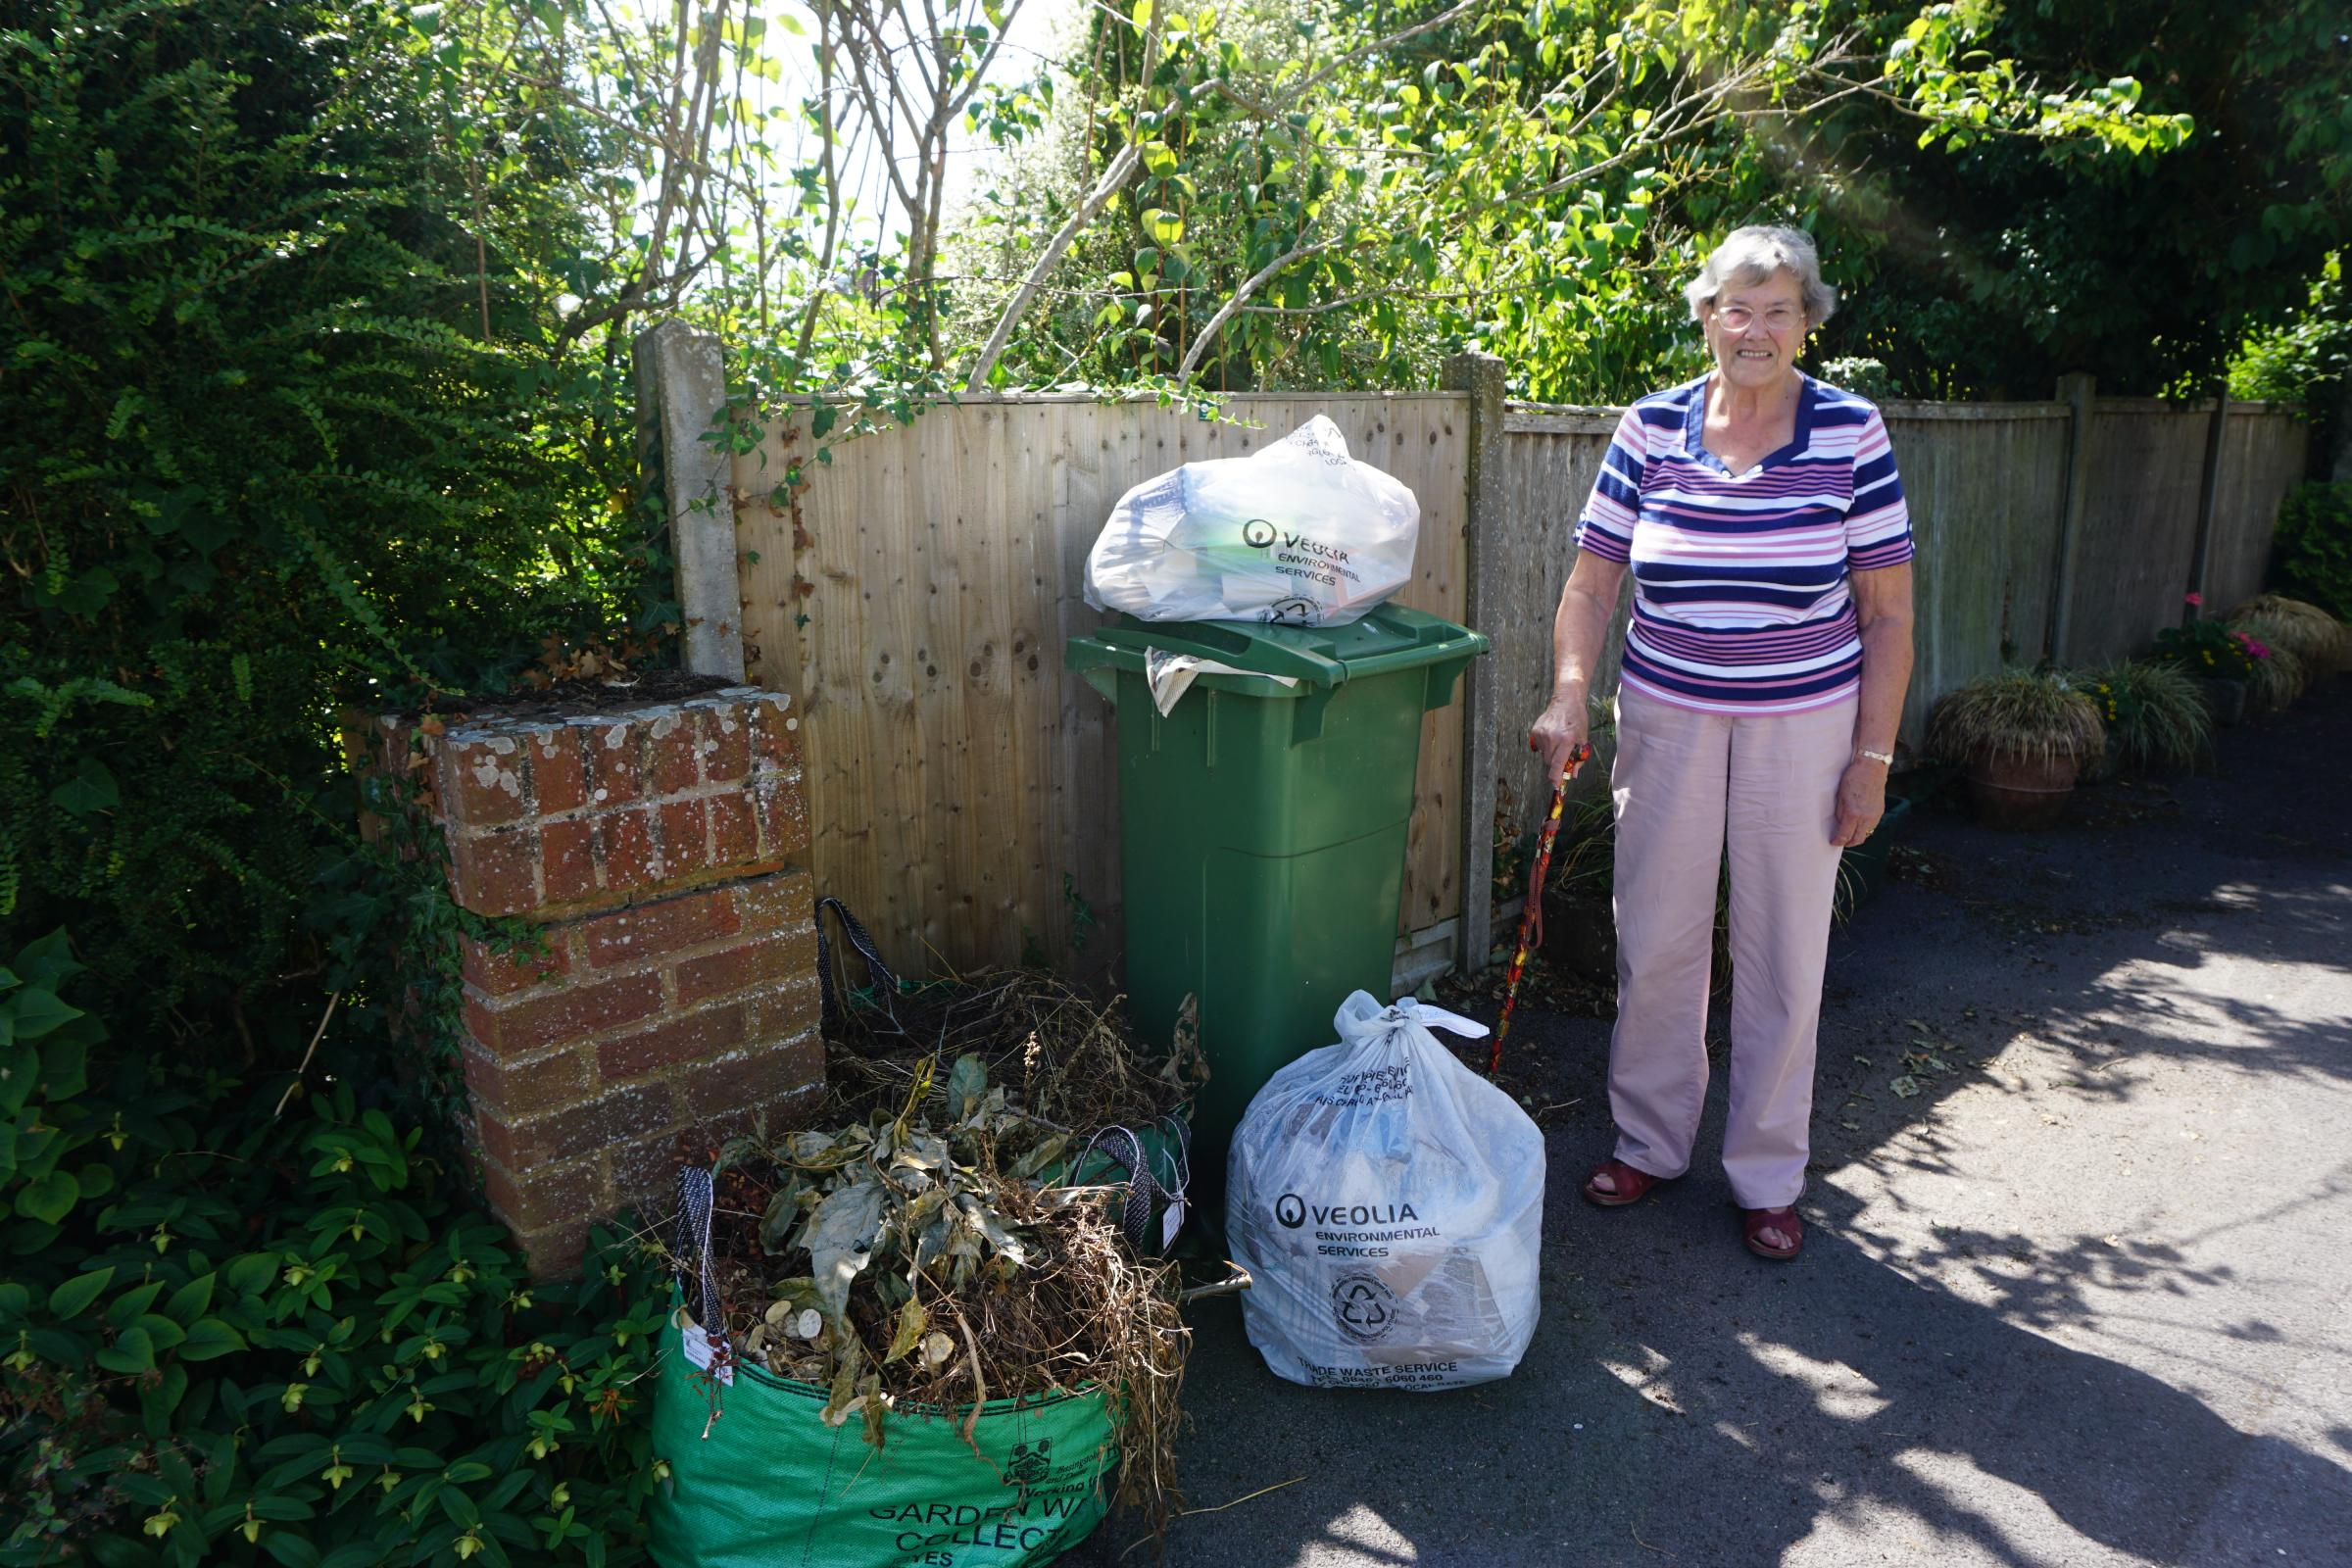 Jill Hallet has had enough of irregular green waste collections